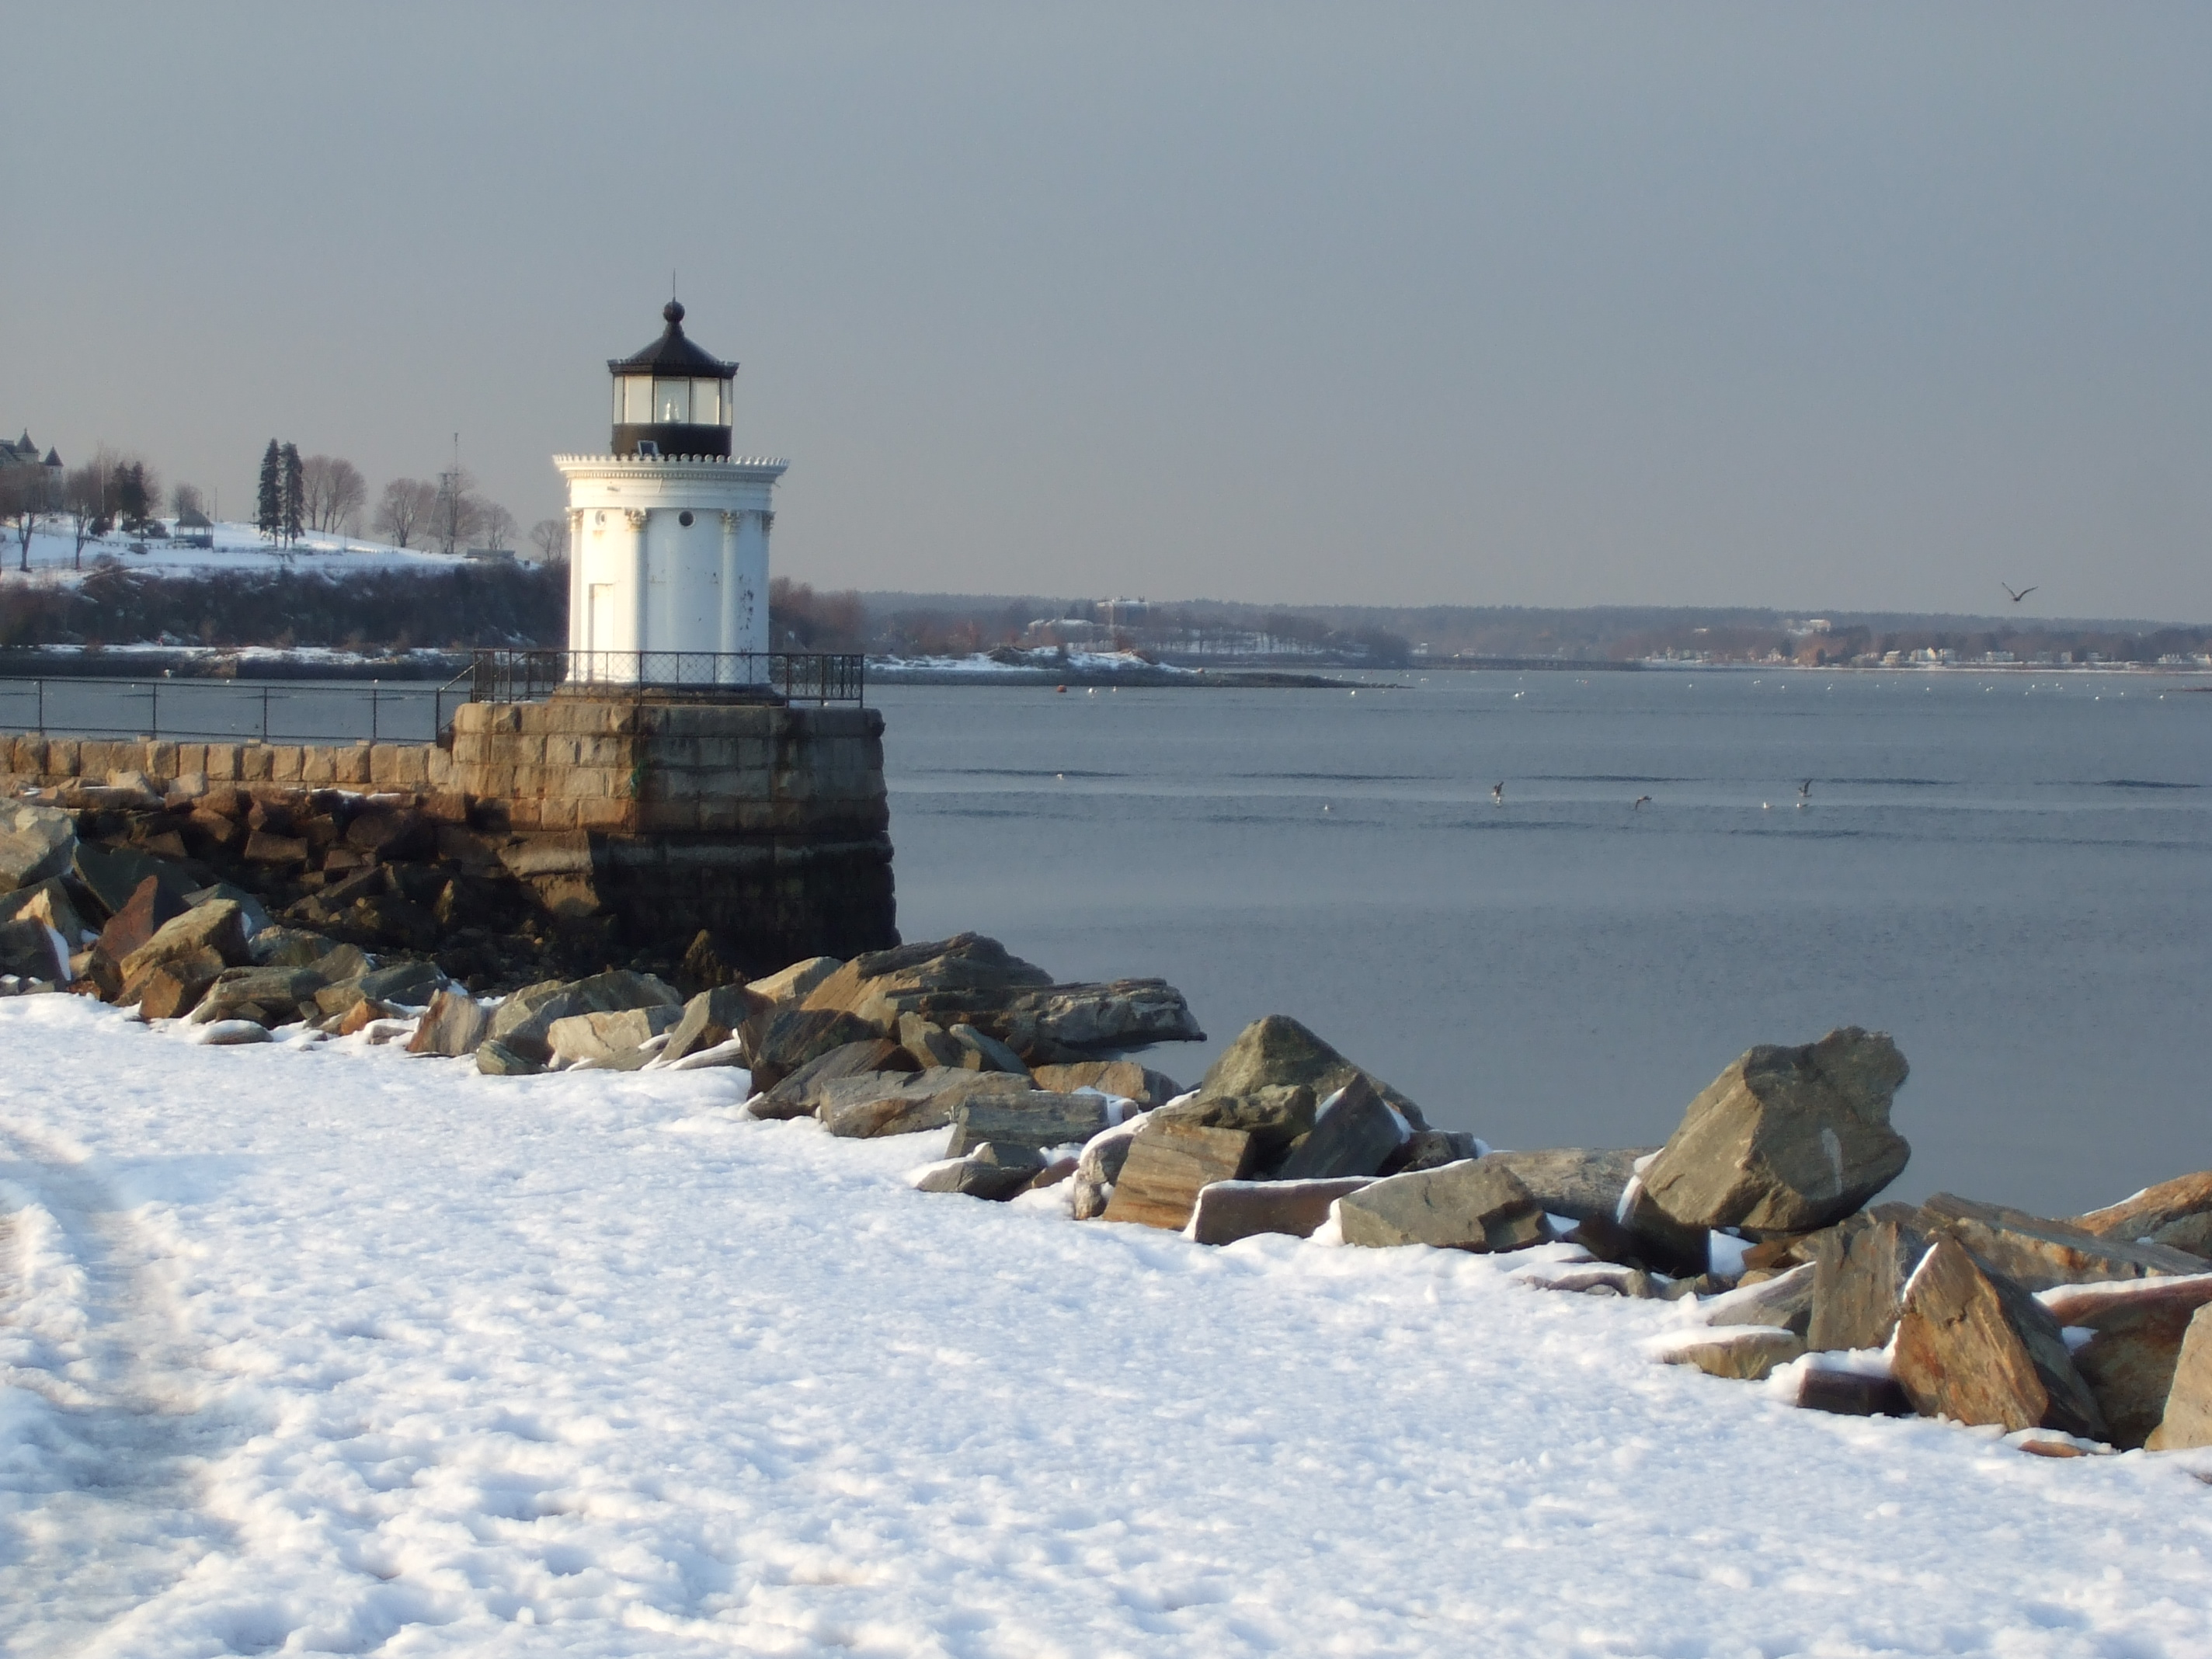 Portland Breakwater Light - Kathy C.